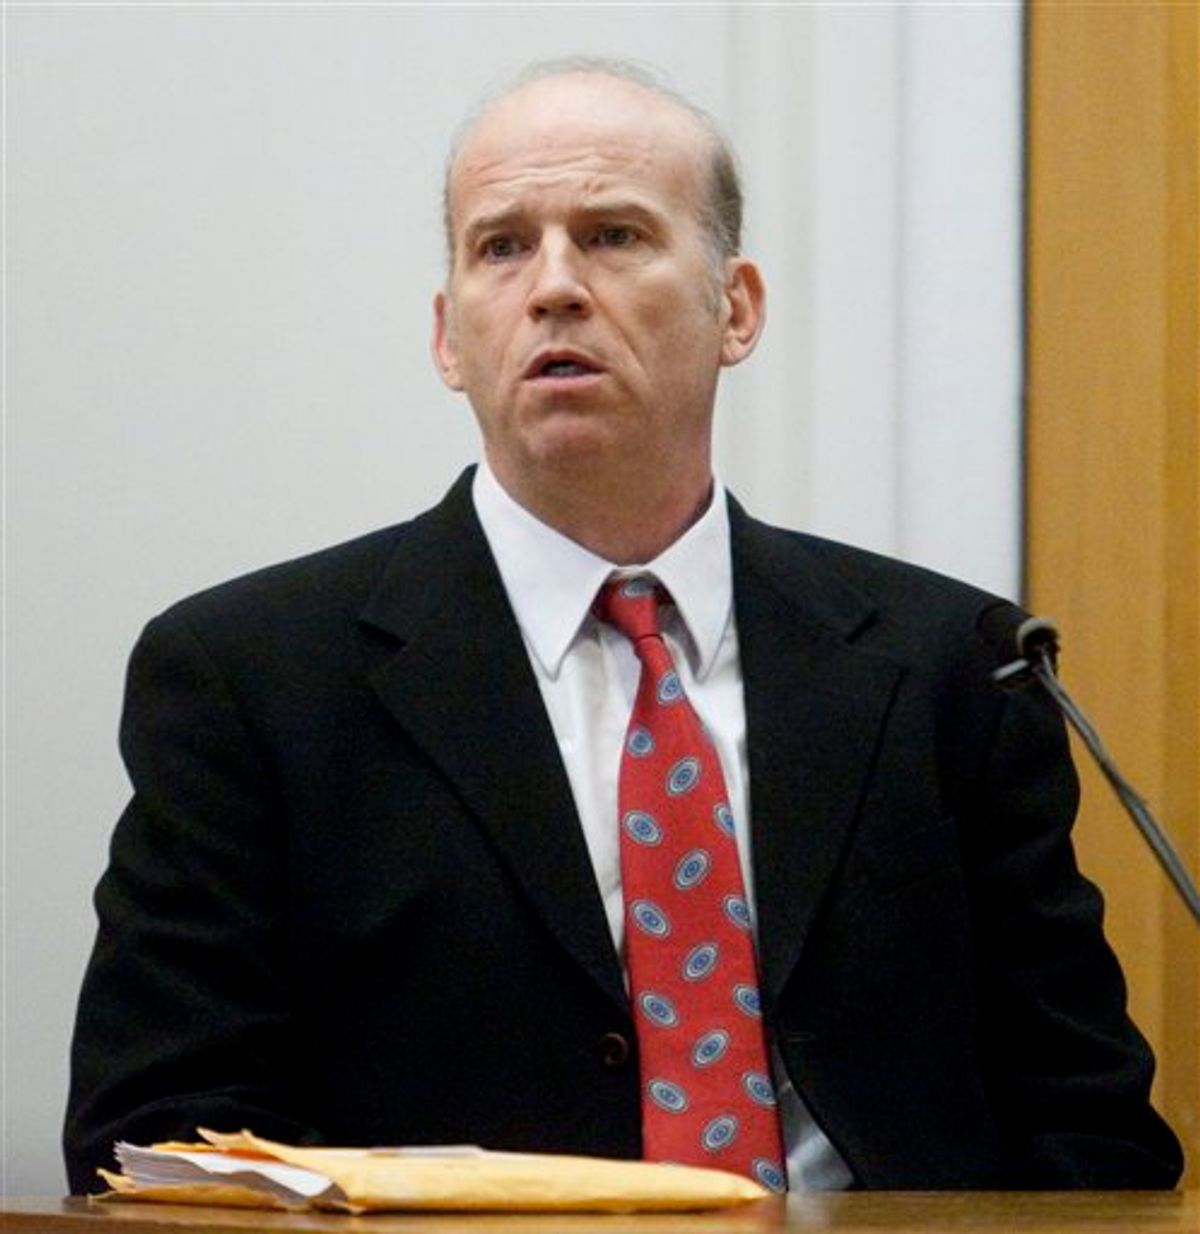 Scott Roeder, accused of murdering prominent Kansas abortion provider Dr. George Tiller,  testifies at his trial on Thursday Jan. 28, 2010 in Wichita, Kansas. Roeder testified  that he killed Tiller in the foyer of Tiller's Wichita church on May 31. The 51-year-old Roeder also said he believes abortion is murder. (AP Photo/Jeff Tuttle, Pool)  (AP)